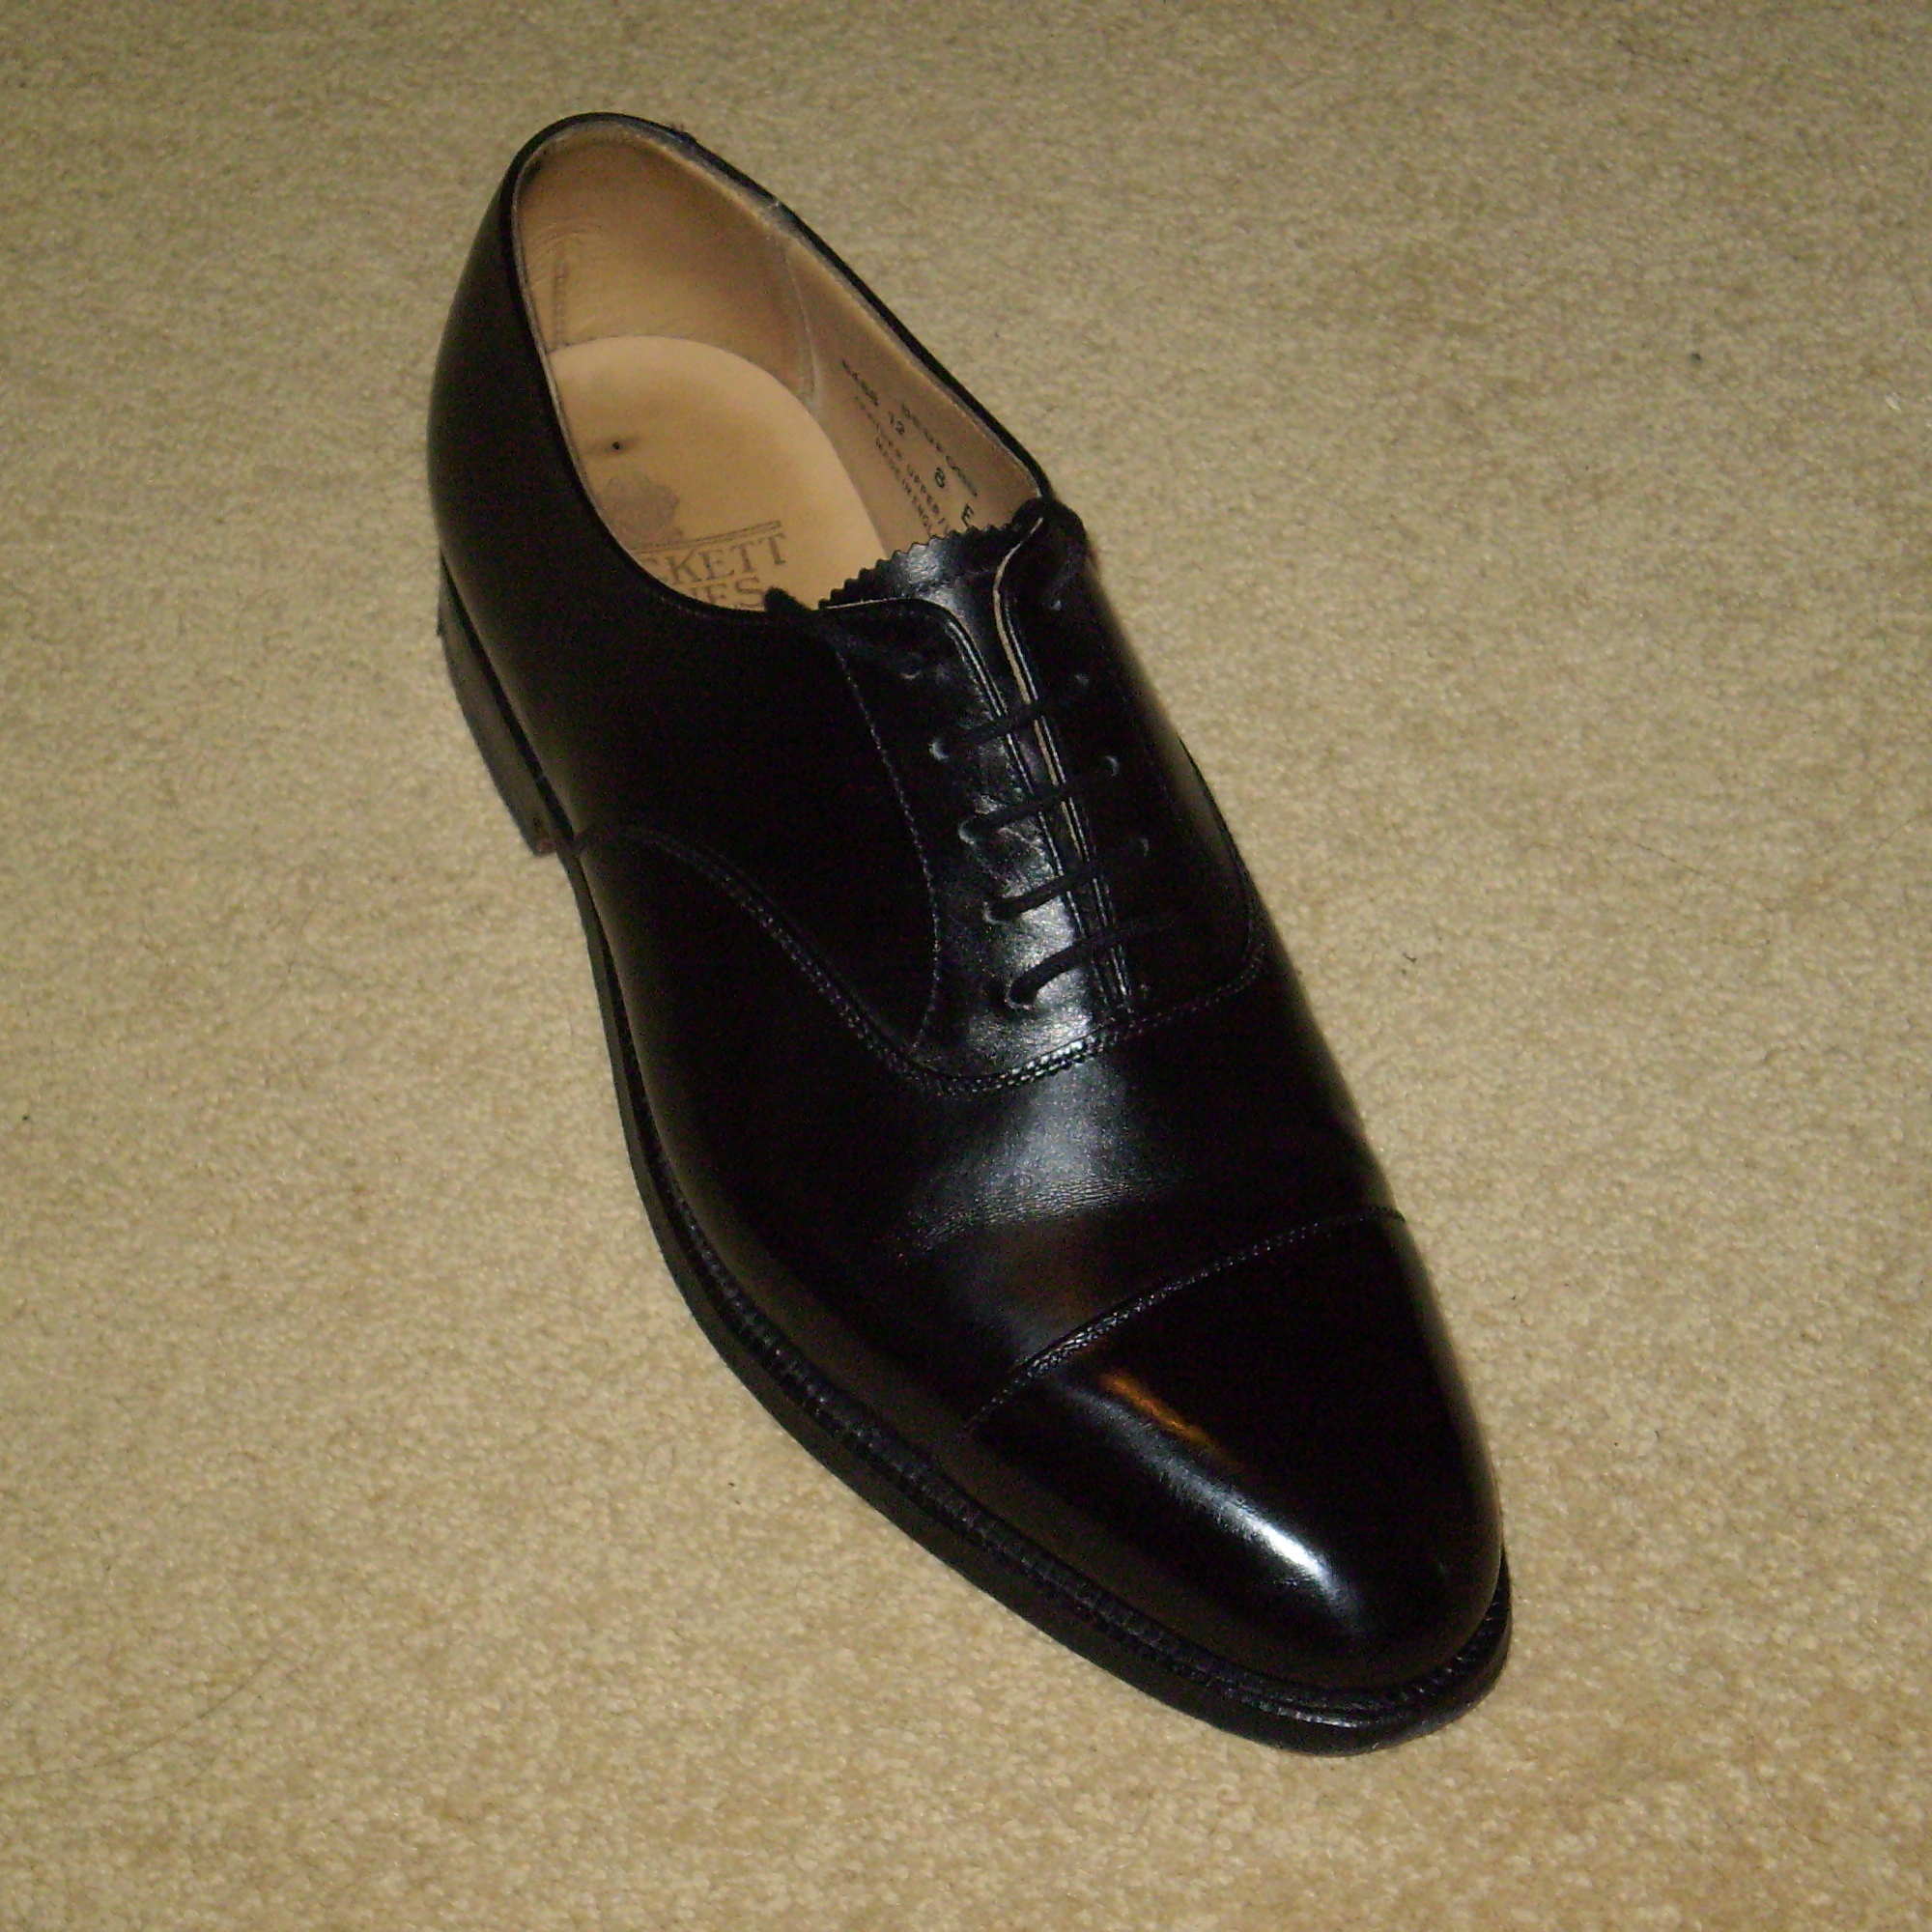 93ae092d6c9 Oxford shoe - Wikipedia